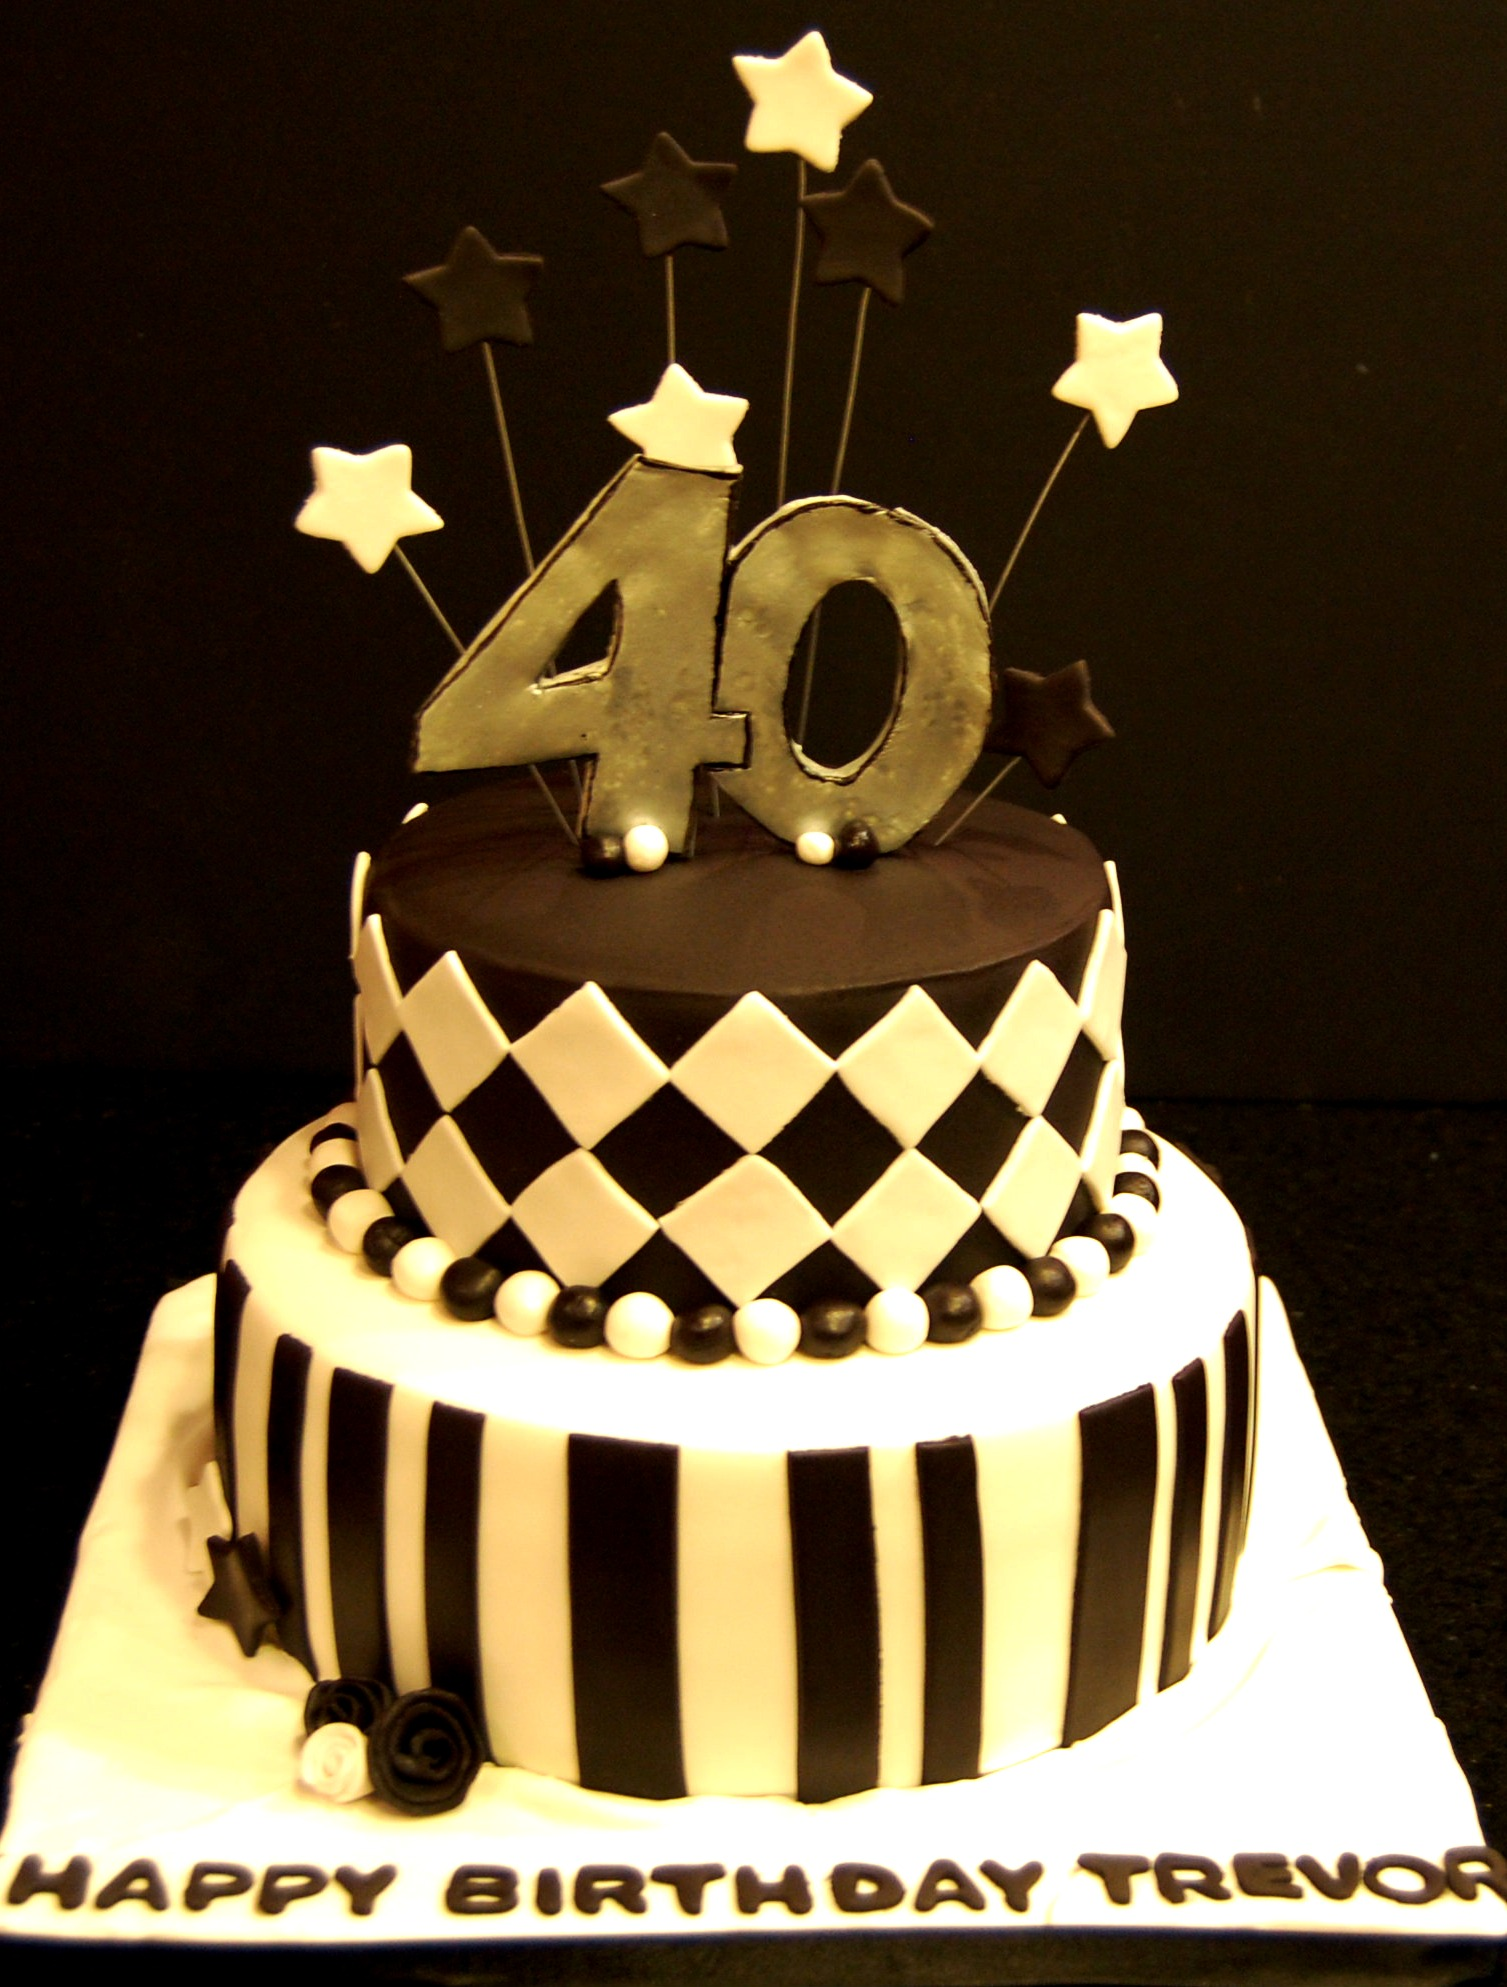 Black and white themed 40th bday cake Marias Dream Cakes